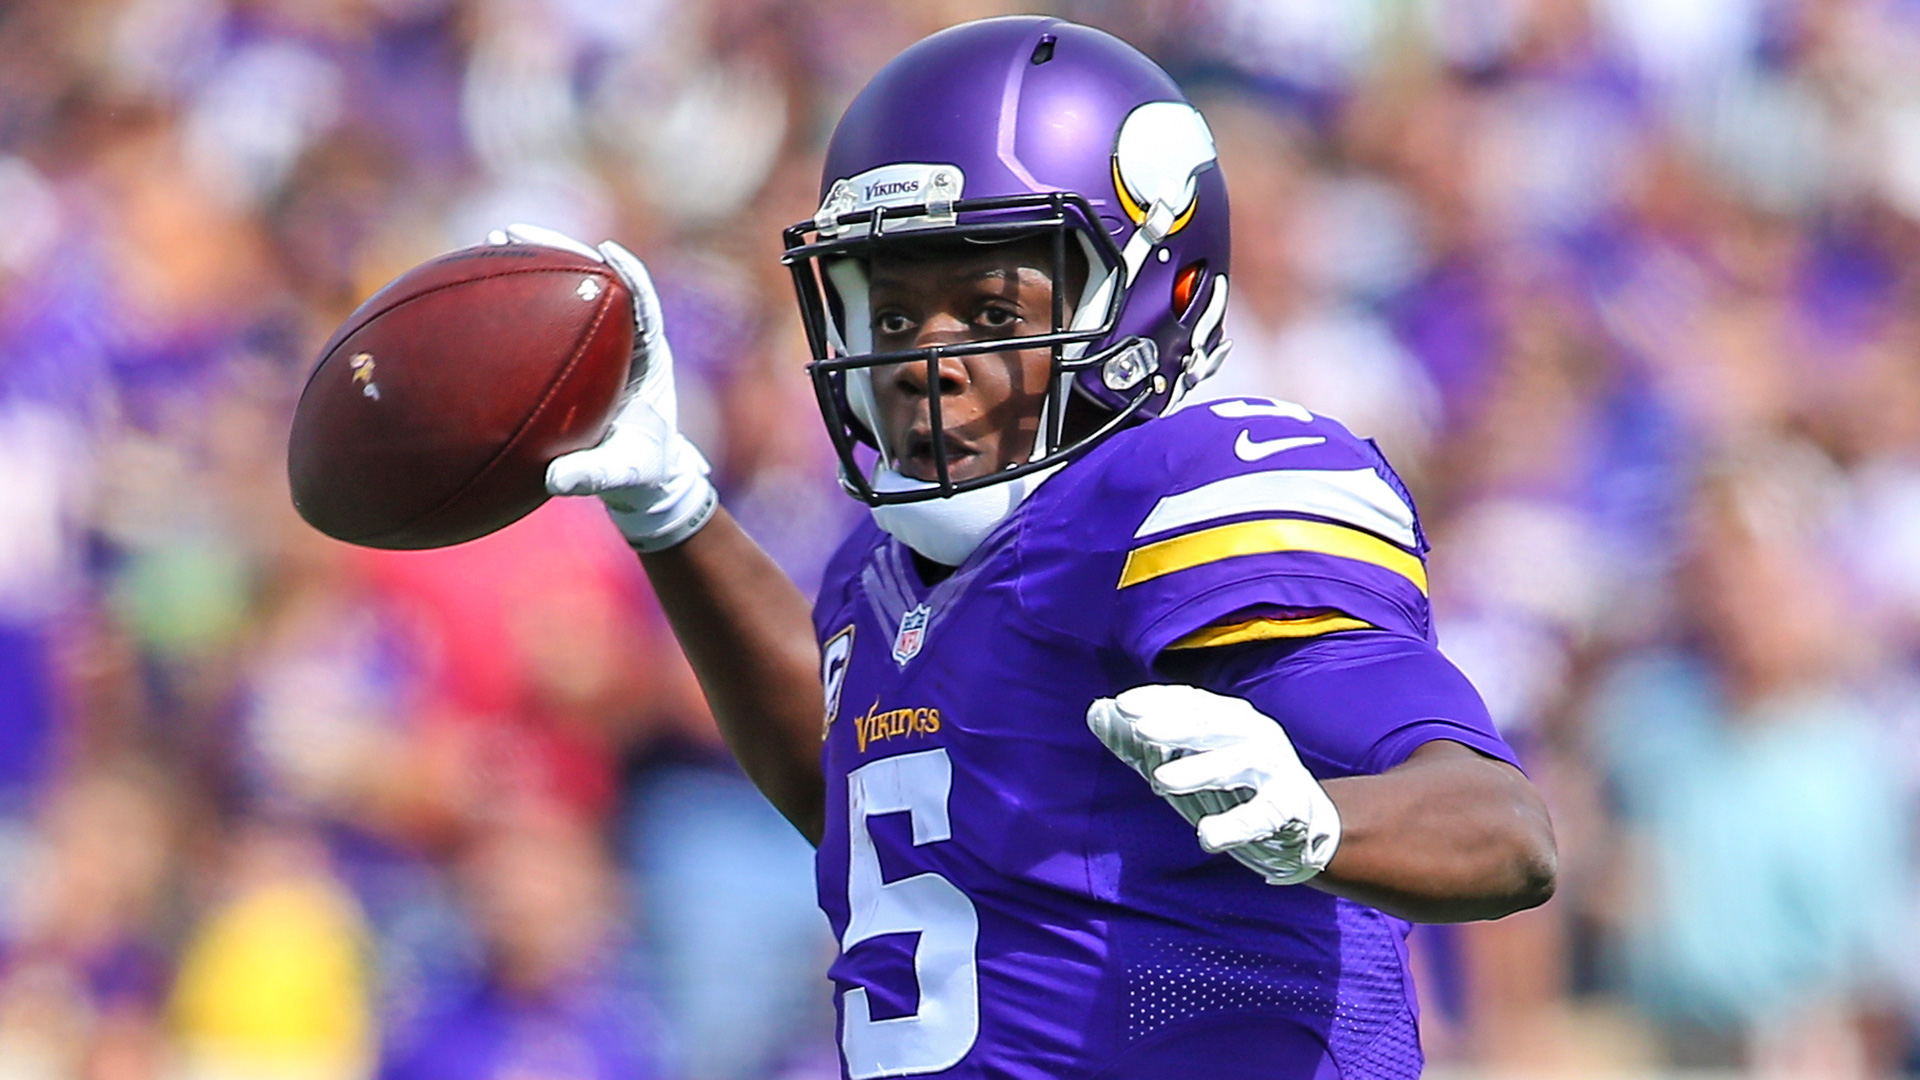 Did Teddy Bridgewater post a video of himself throwing on Instagram?